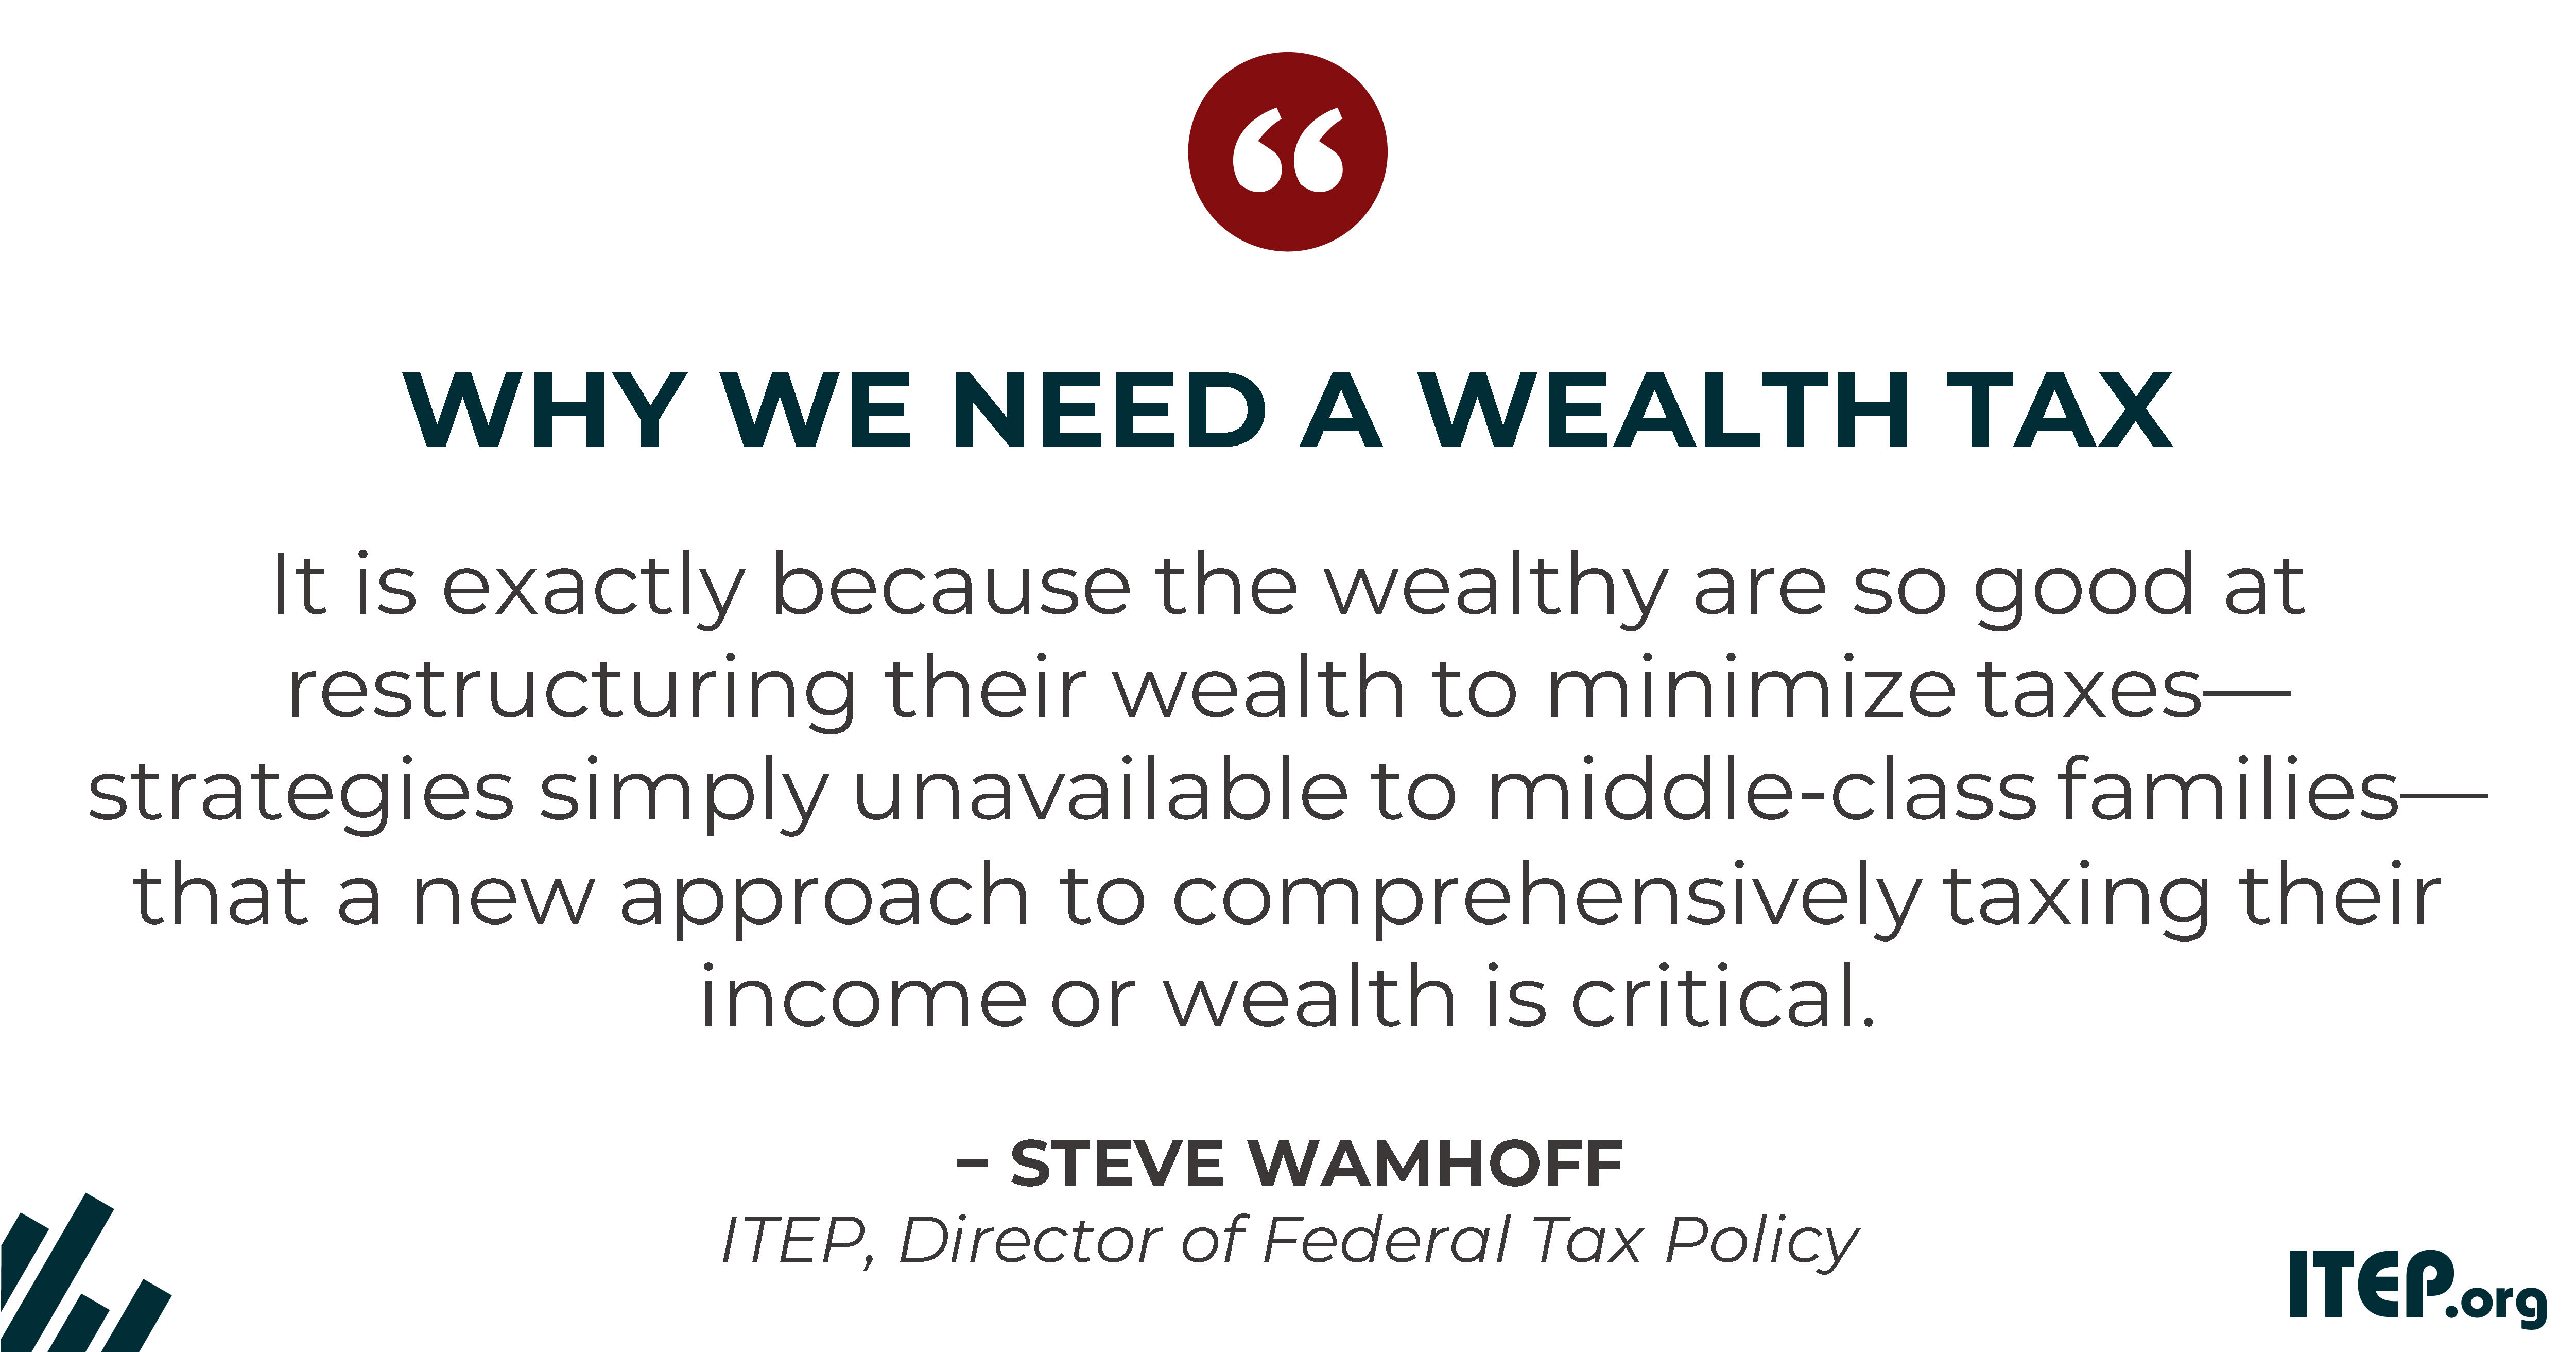 A Wealth Tax Might Be Easier to Implement than You Think